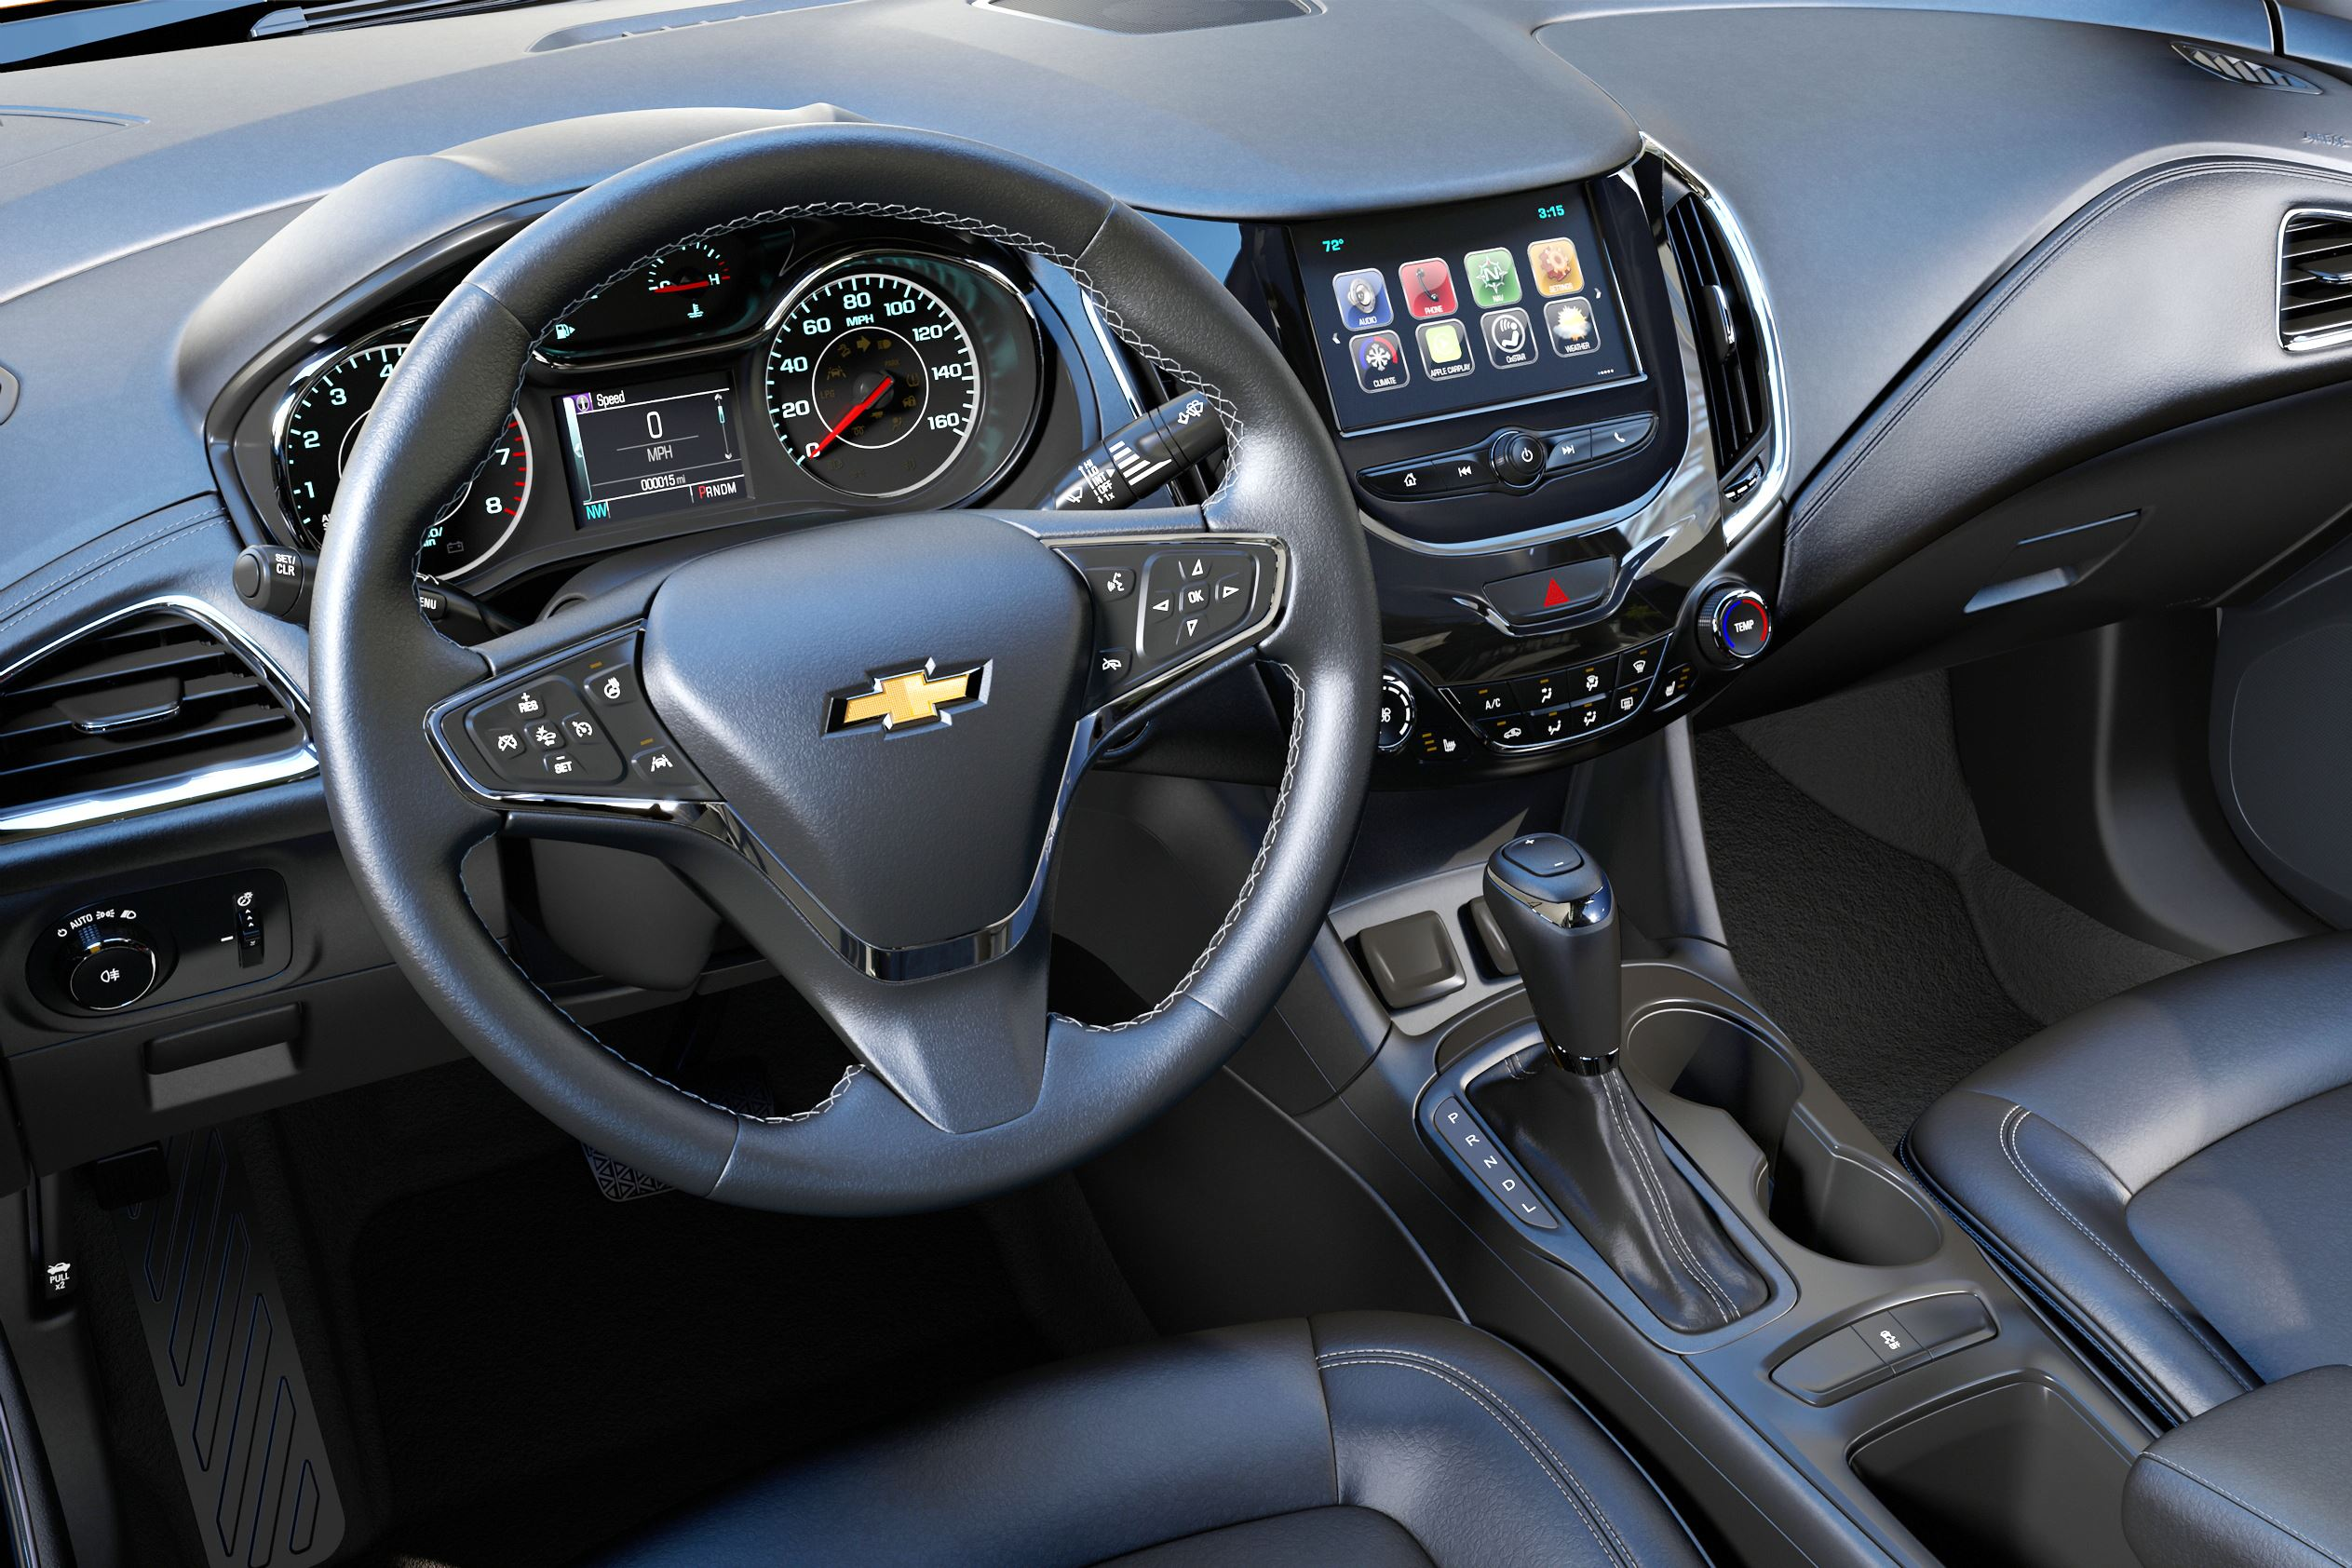 Scott Sturgis 39 Driver 39 S Seat Chevy Cruze Hatchback Is Pretty If Nothing Else Pittsburgh Post